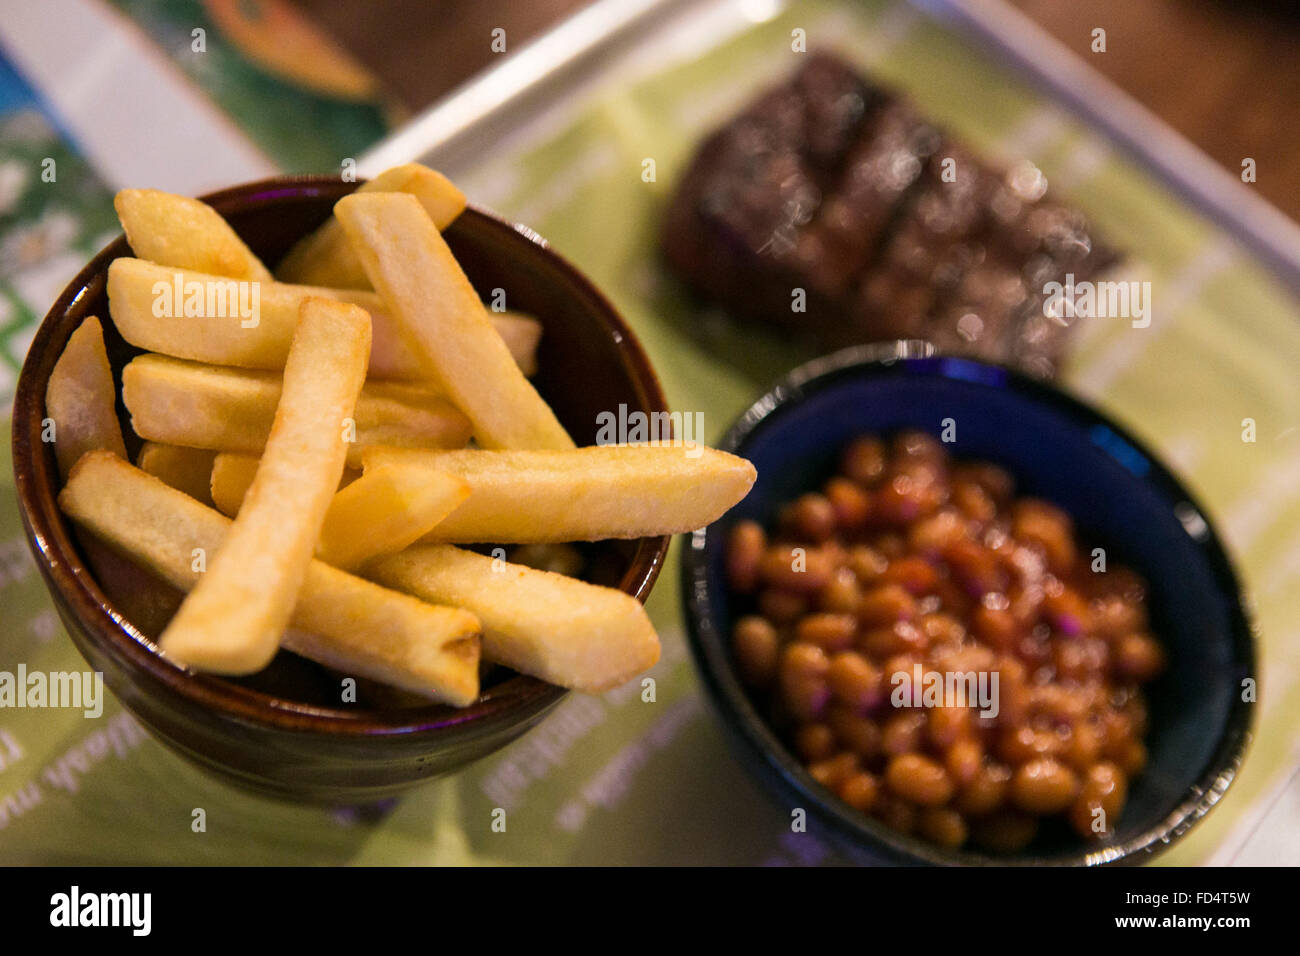 beans chips and steak meal in a pub - Stock Image